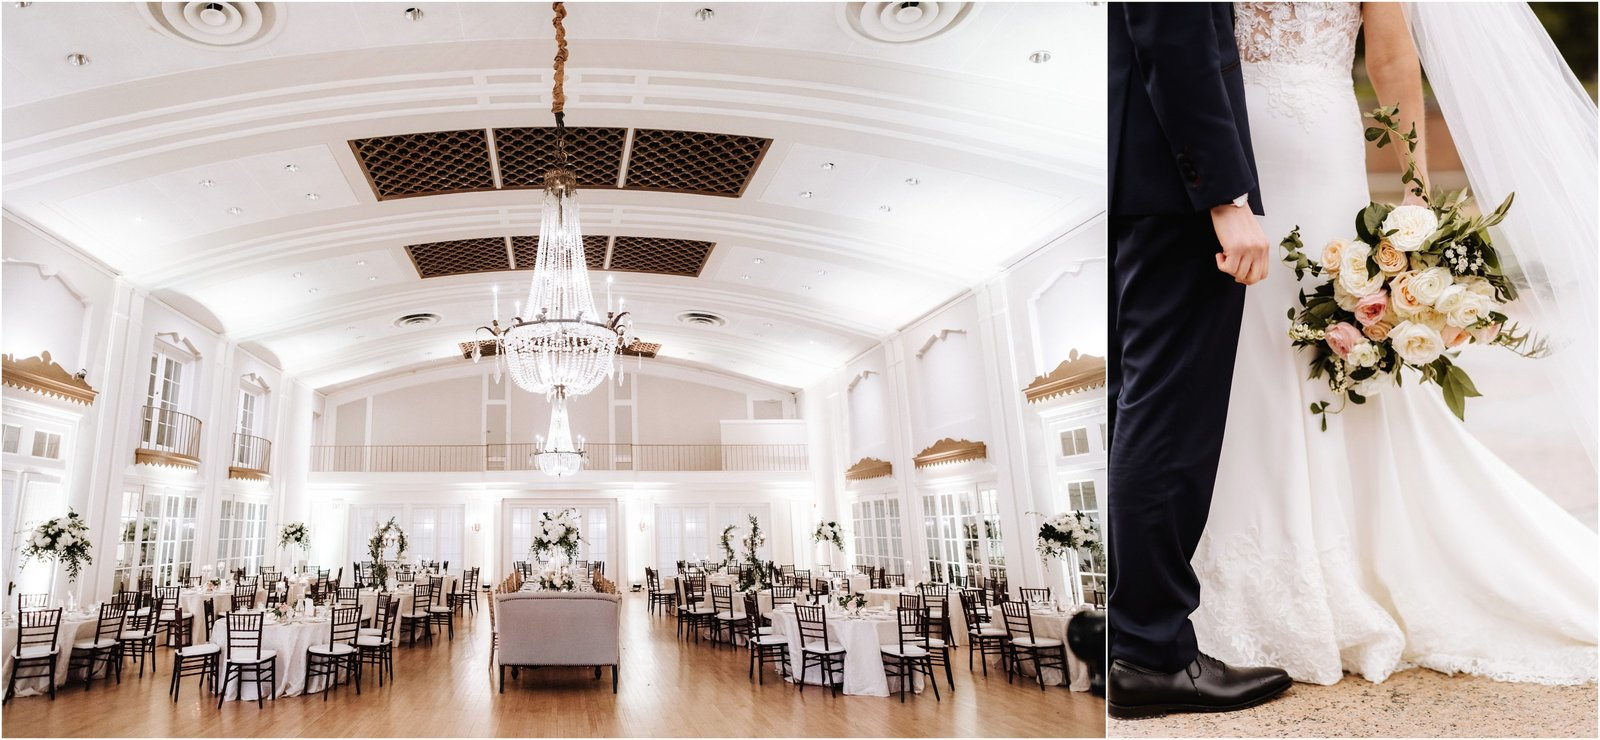 Elegant Country Club wedding at Lafayette Club